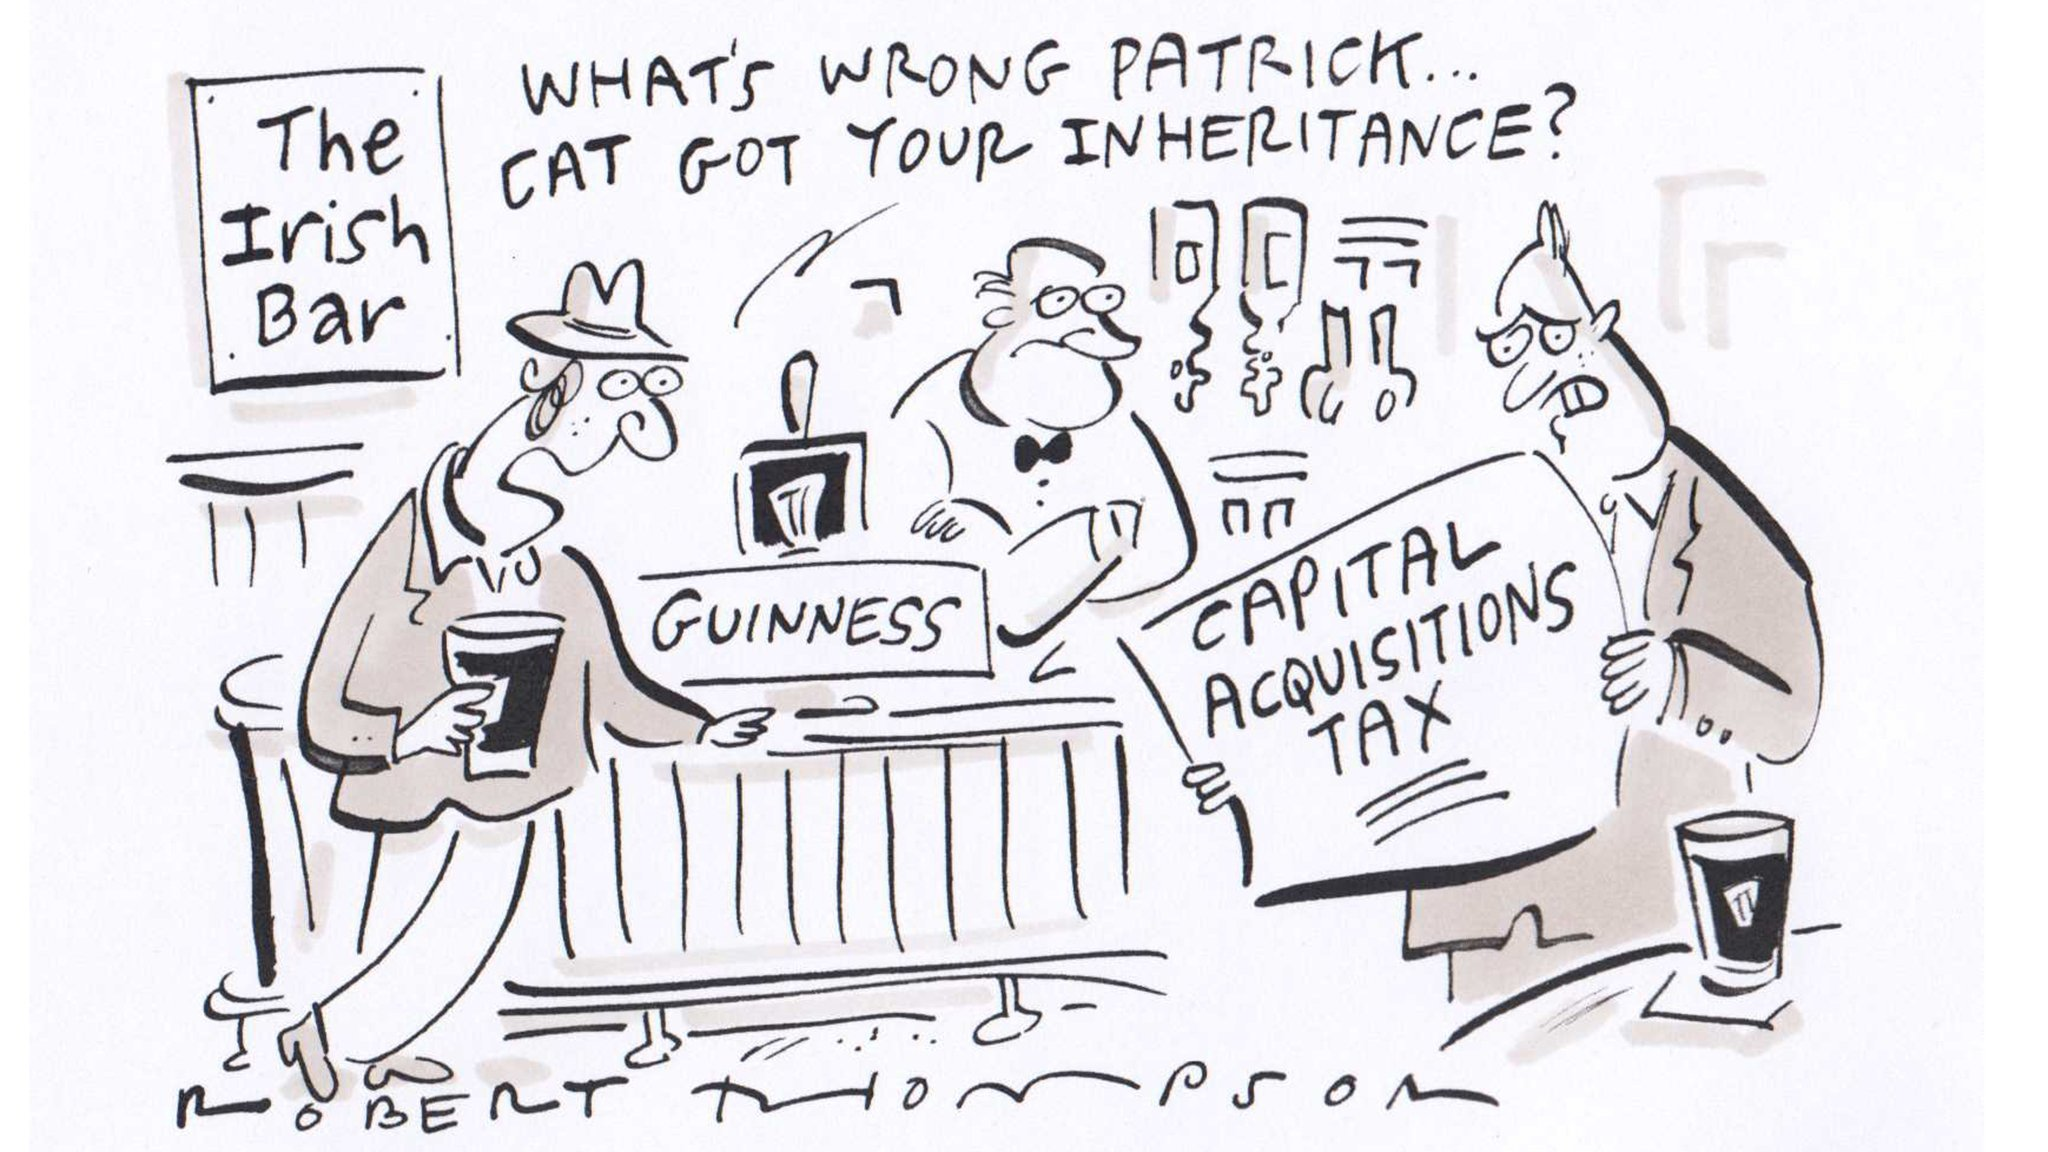 Should I pay inheritance tax in the UK or Ireland?